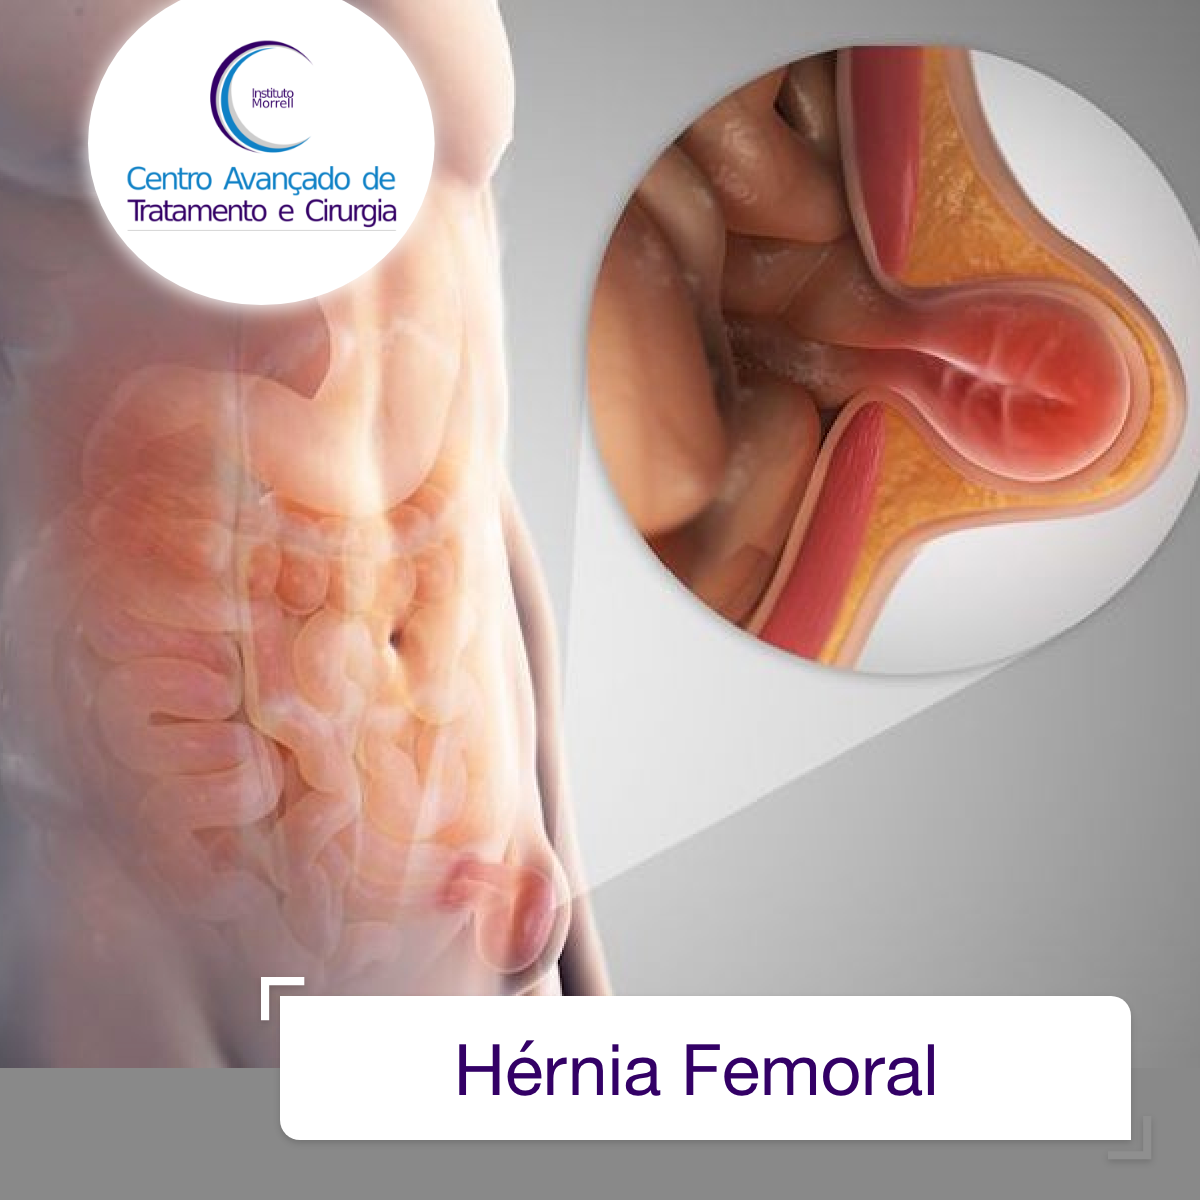 INSTITUTO_MORRELL-2018-Hérnia_Femoral-1200x1200.png